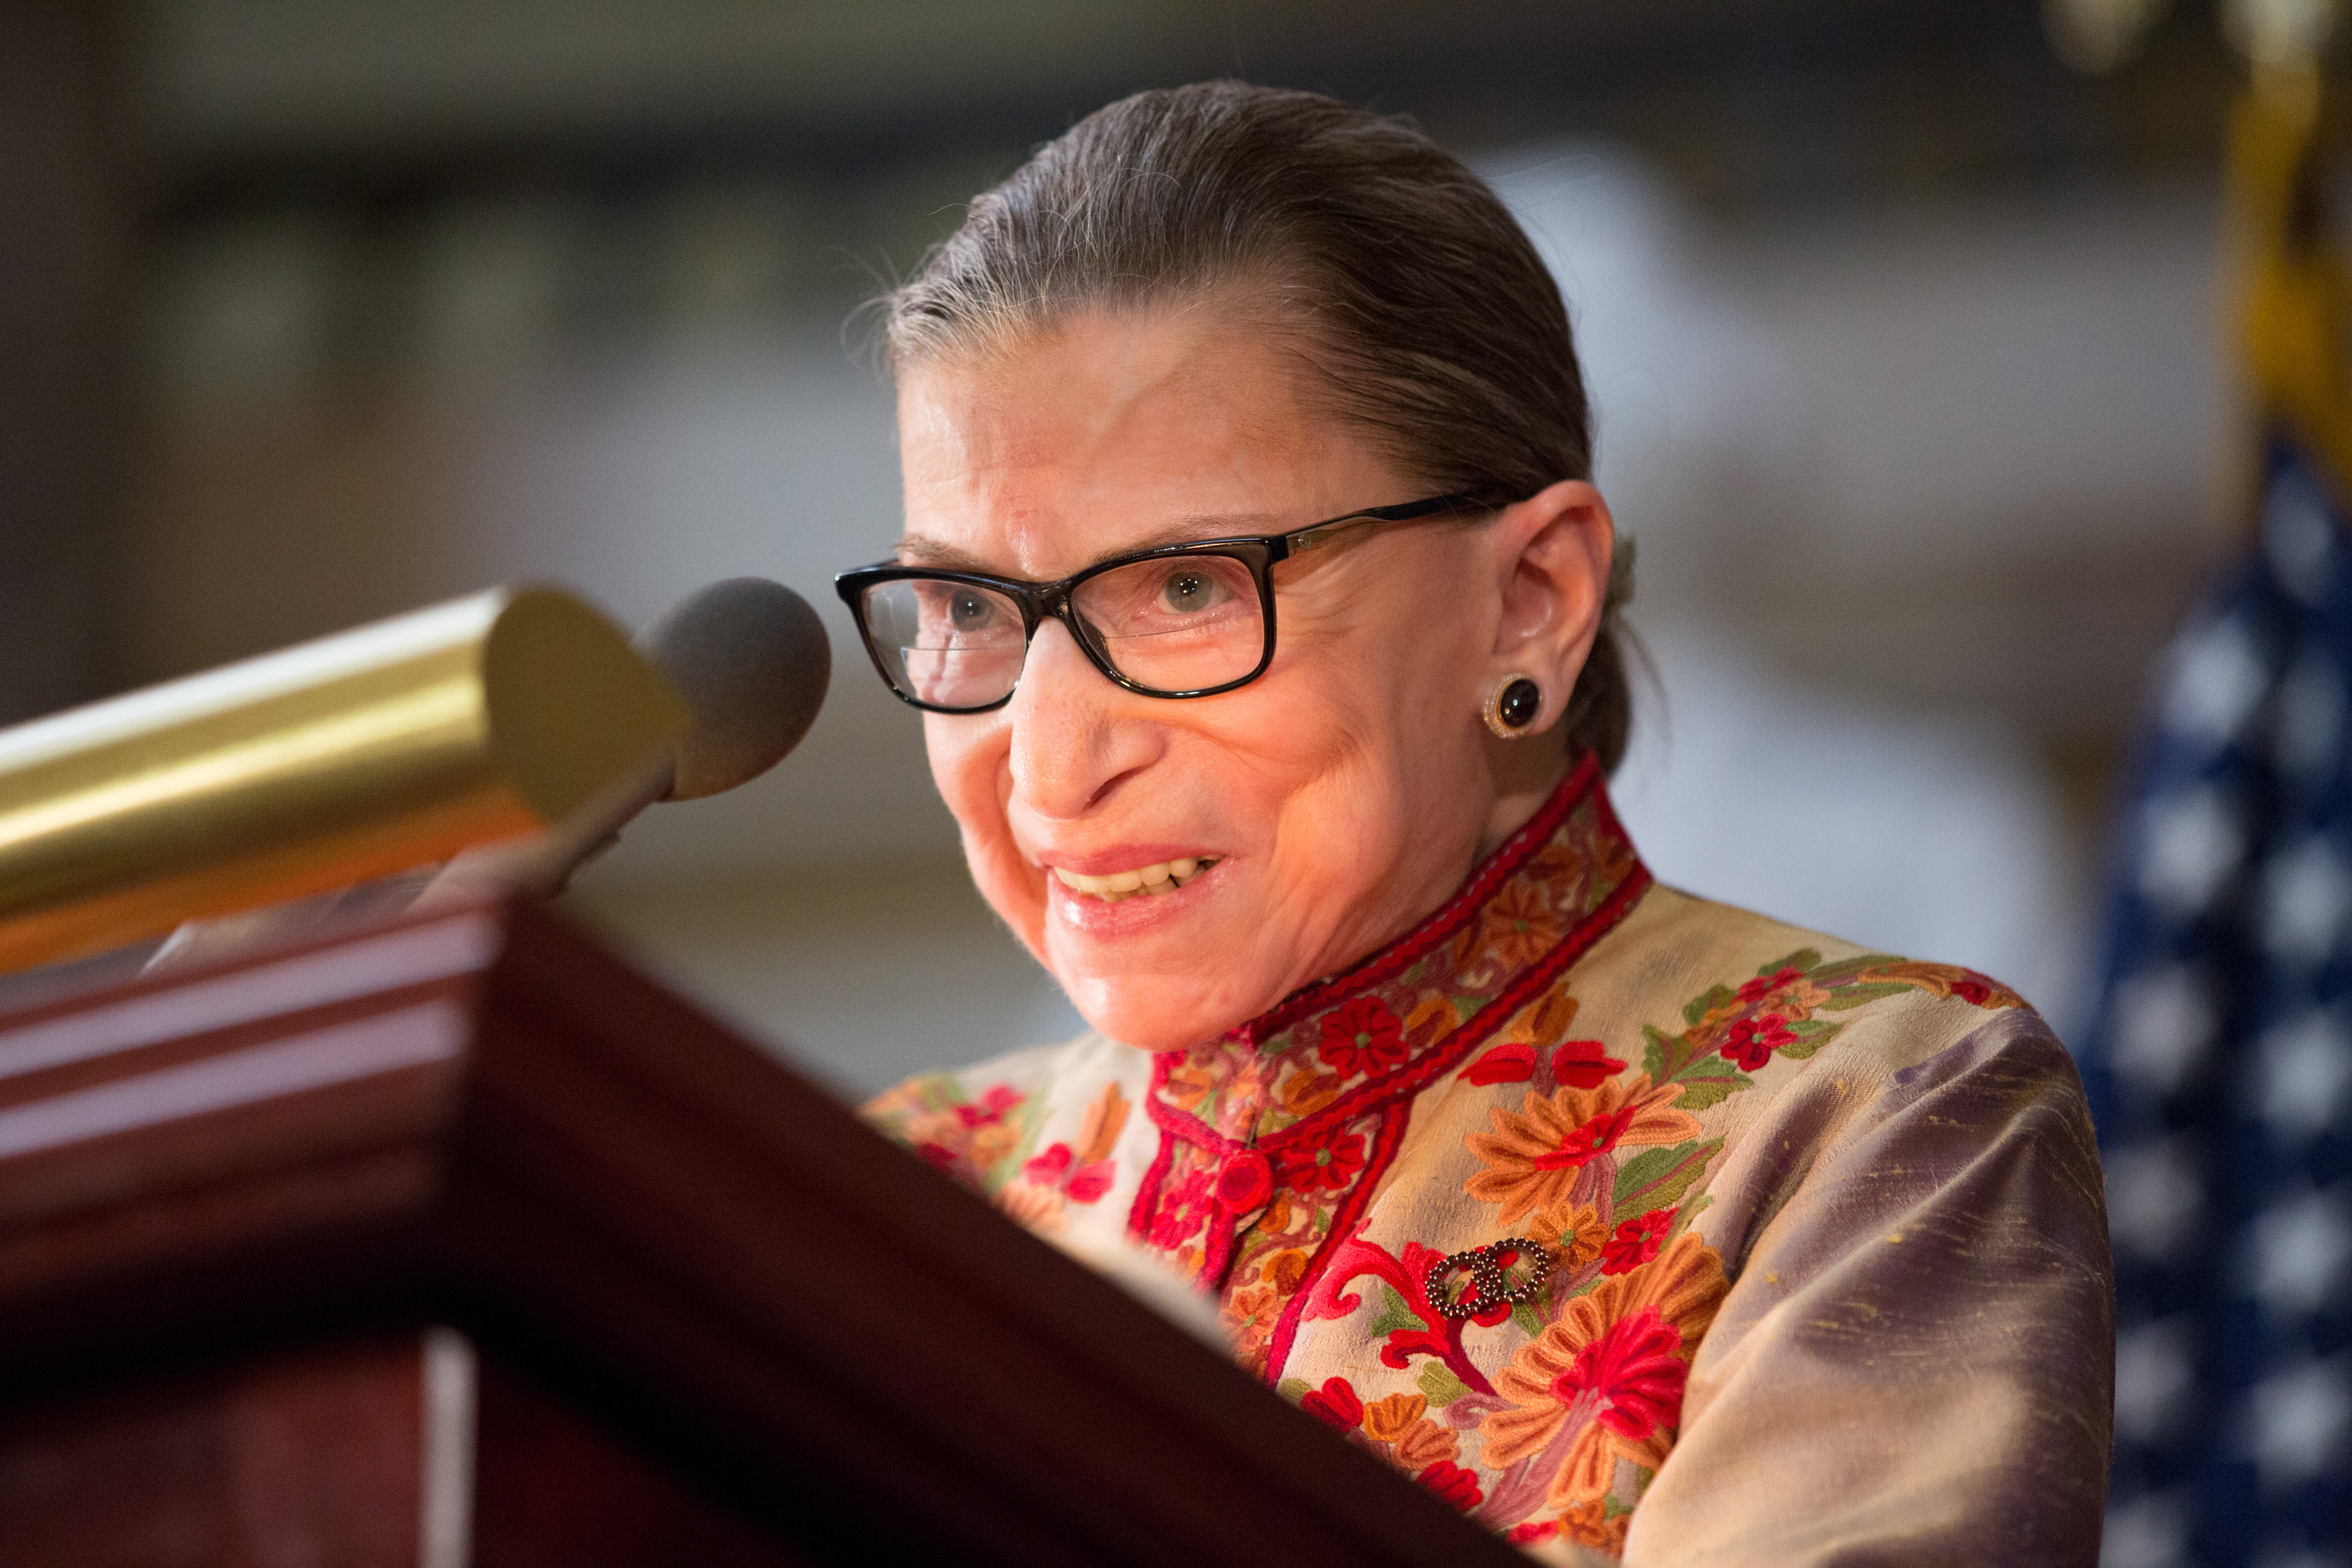 U.S. Supreme Court Justice Ruth Bader Ginsburg speaks at an annual Women's History Month reception hosted by Pelosi in the U.S. capitol building on Capitol Hill in Washington, D.C. on March 18.